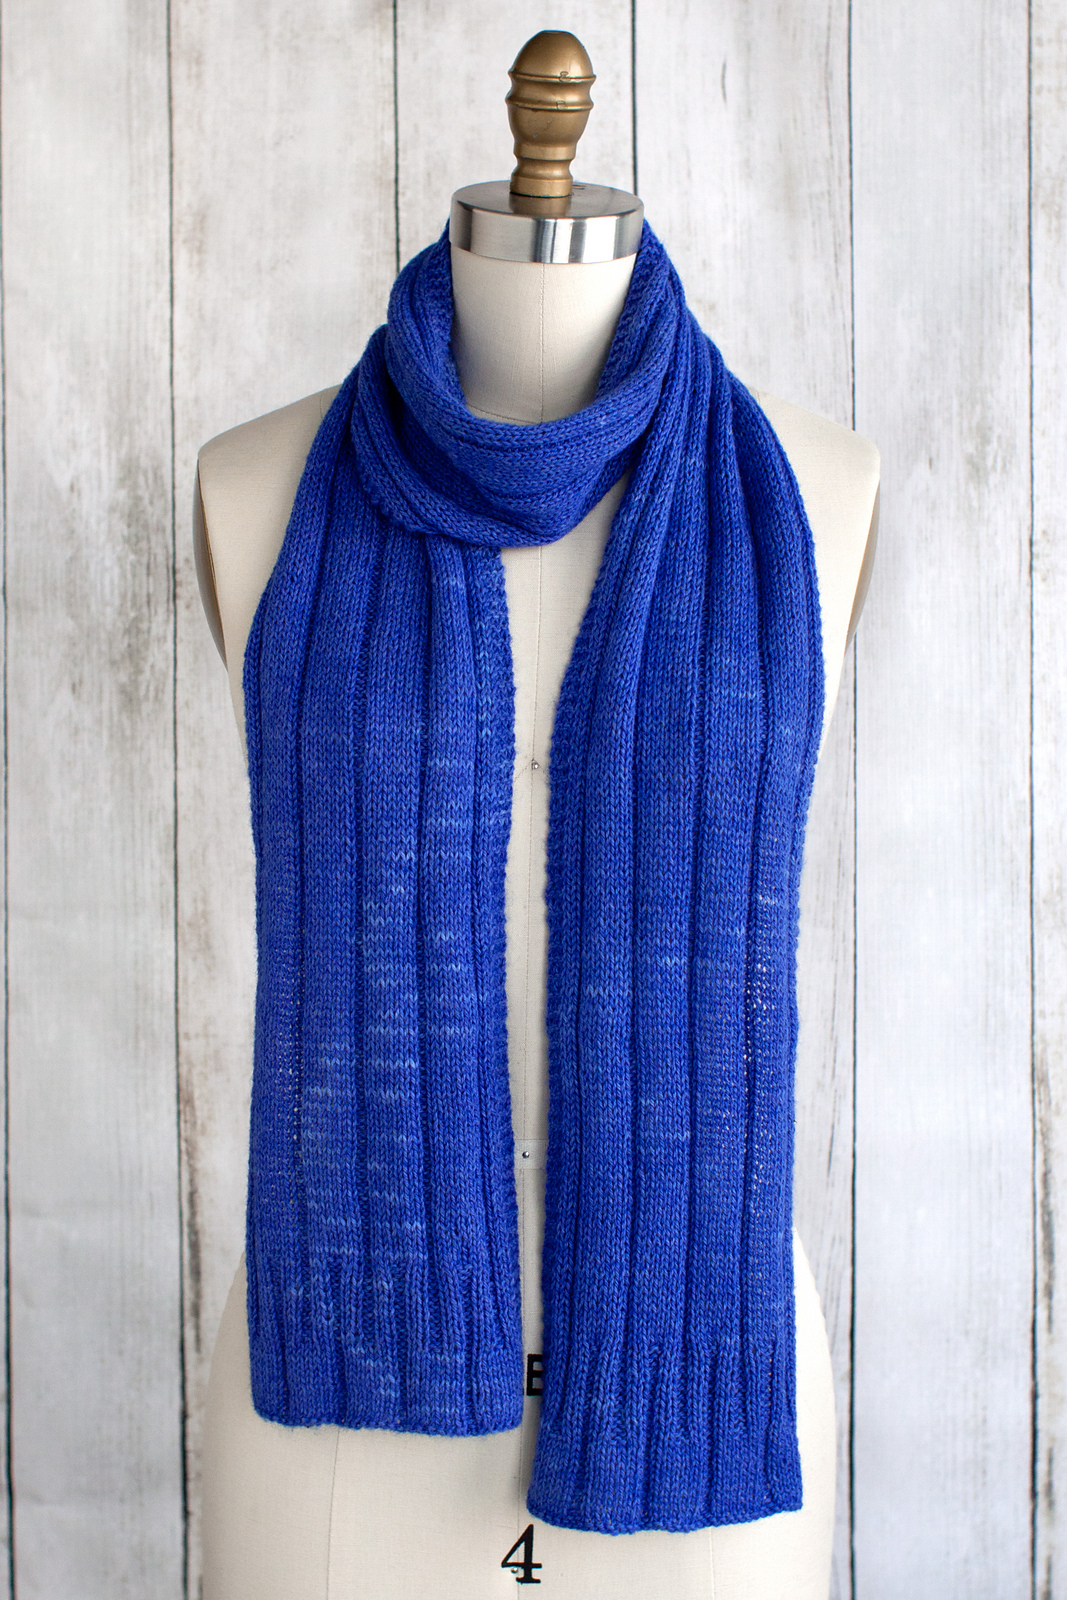 vibrant blue knitted scarf in simple knits and purl pattern